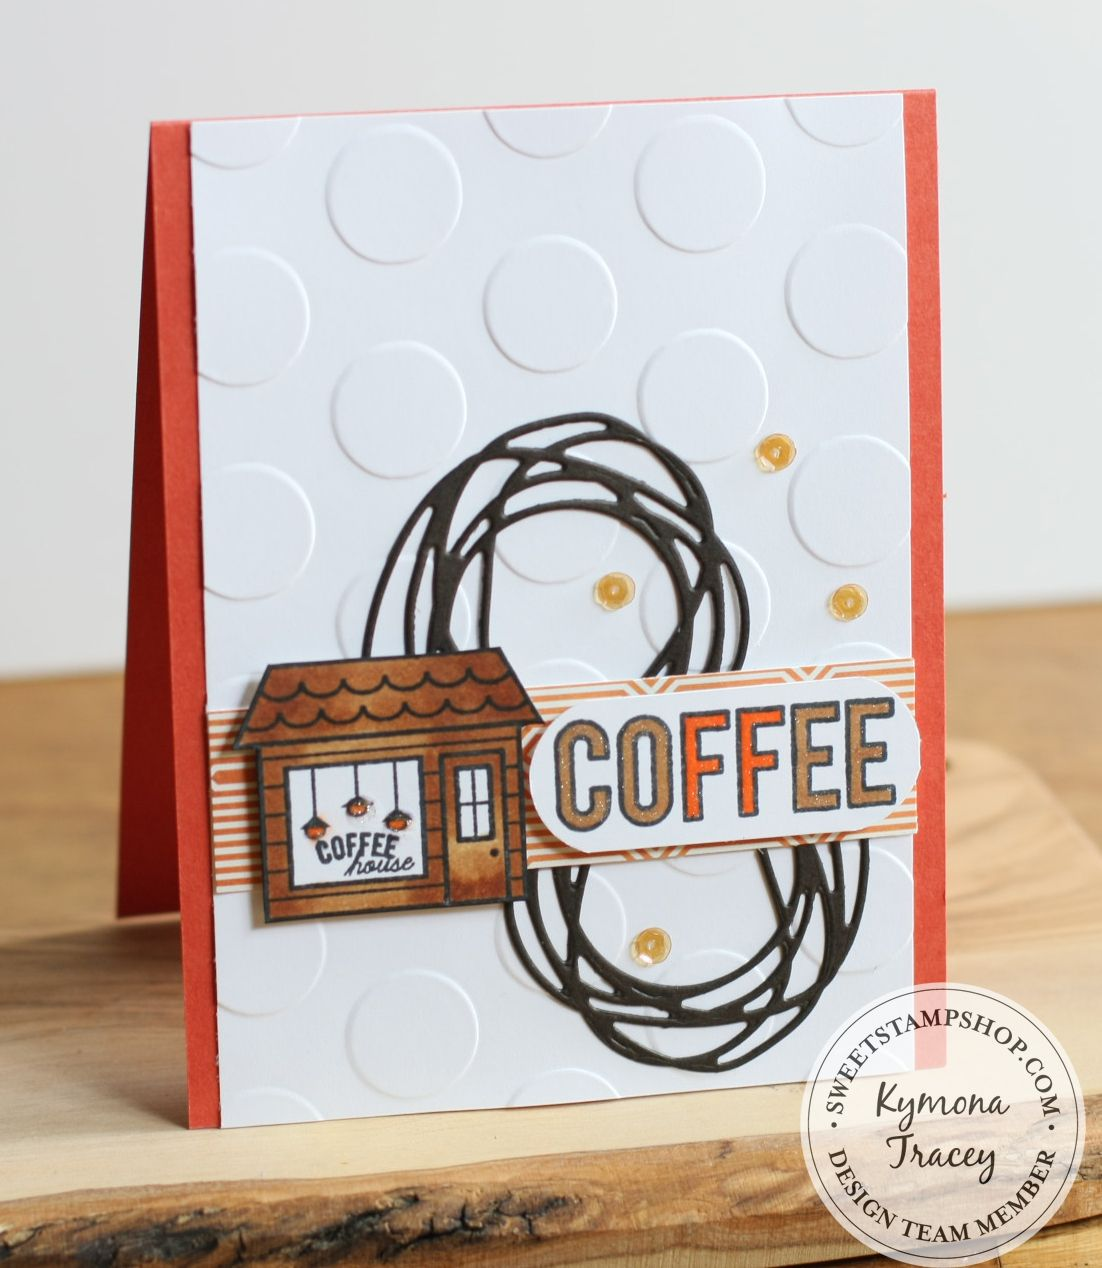 National Coffee Day was created with Sweet Stamp Shop